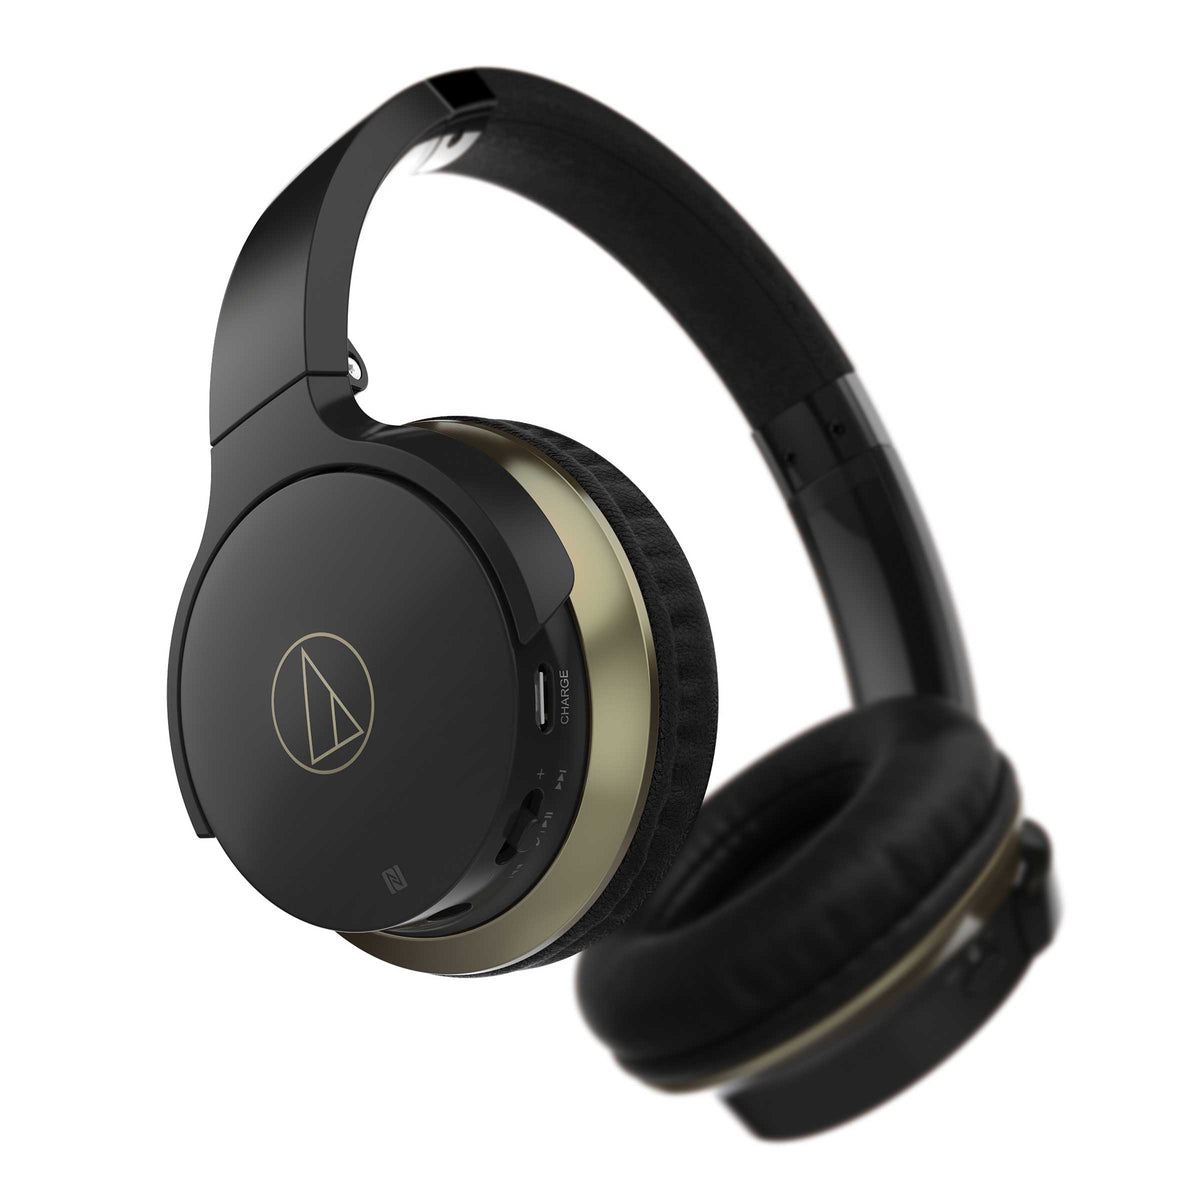 Audio-Technica: ATH-AR3BTBK SonicFuel Wireless Headphones w/Mic & Control - Black